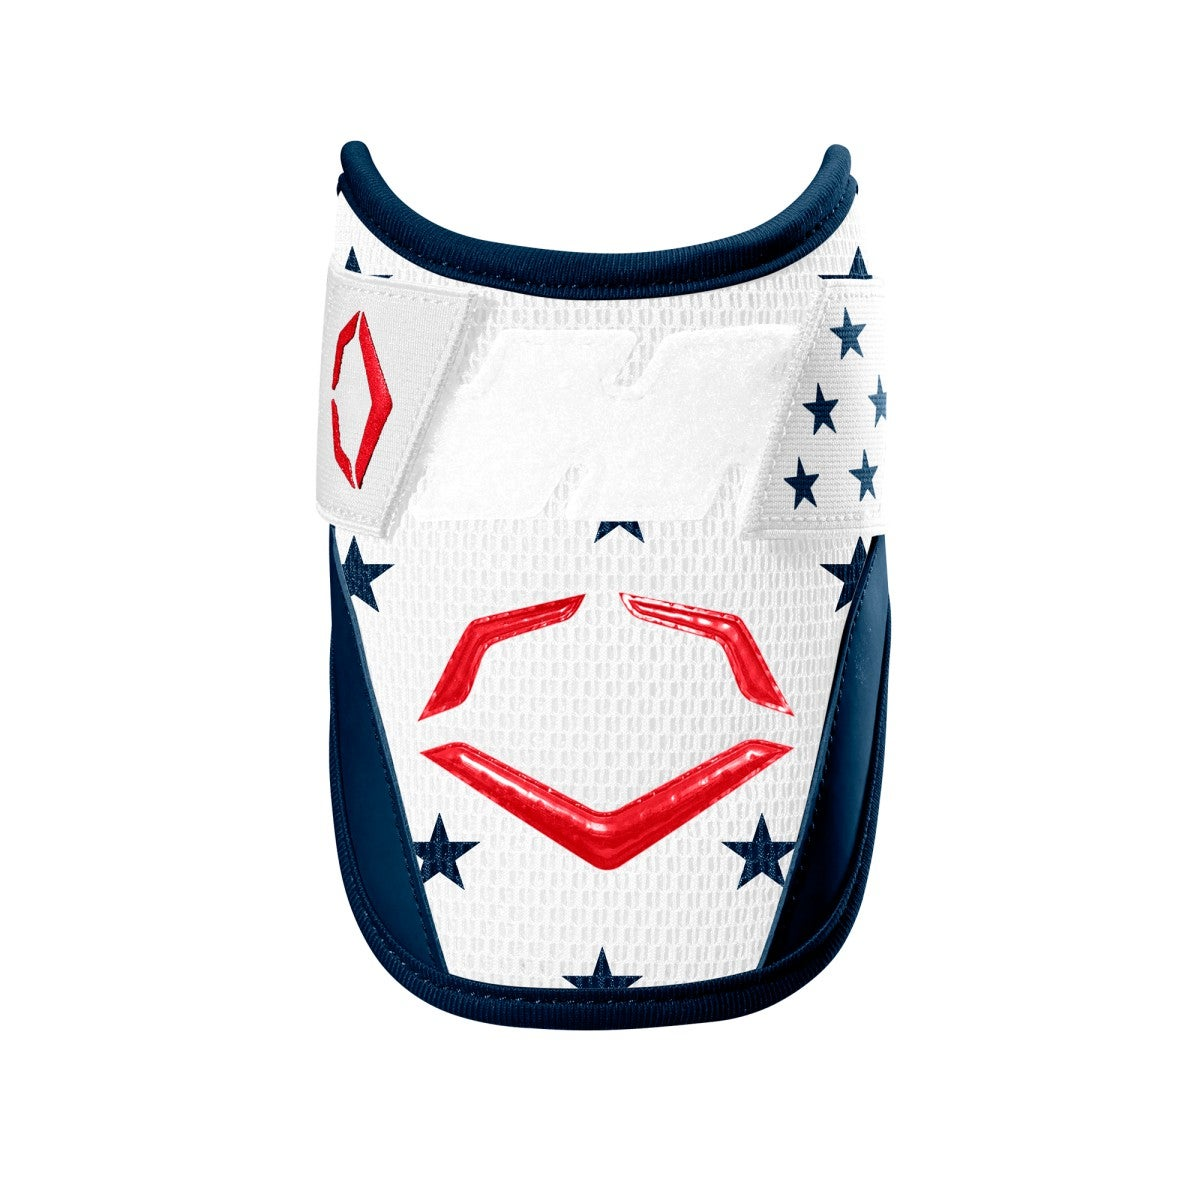 X-SRZ USA Batter's Elbow Guard